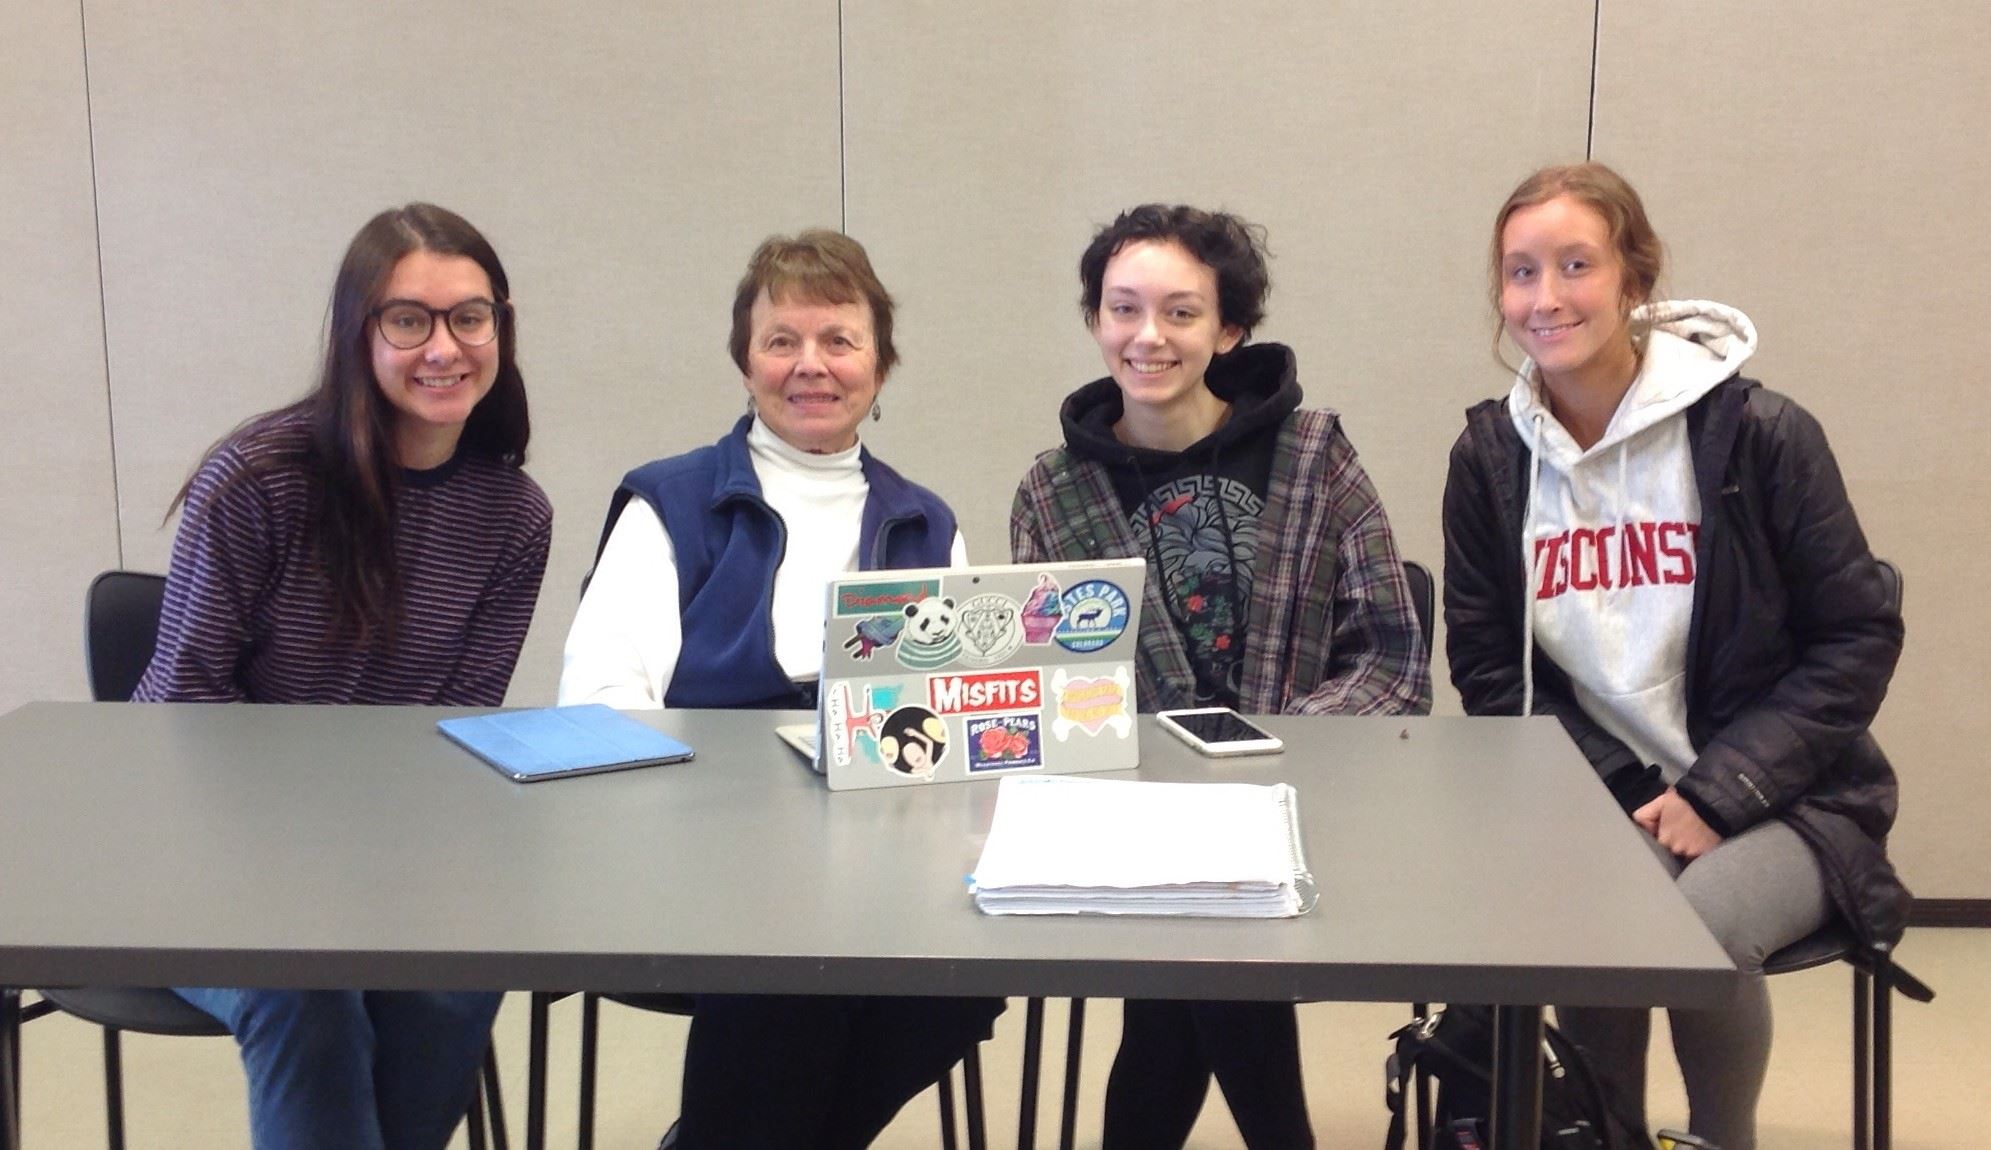 Gabrielle Ruder, Sandy paap, Shannon Wilding, Sydney elliot tech tutors